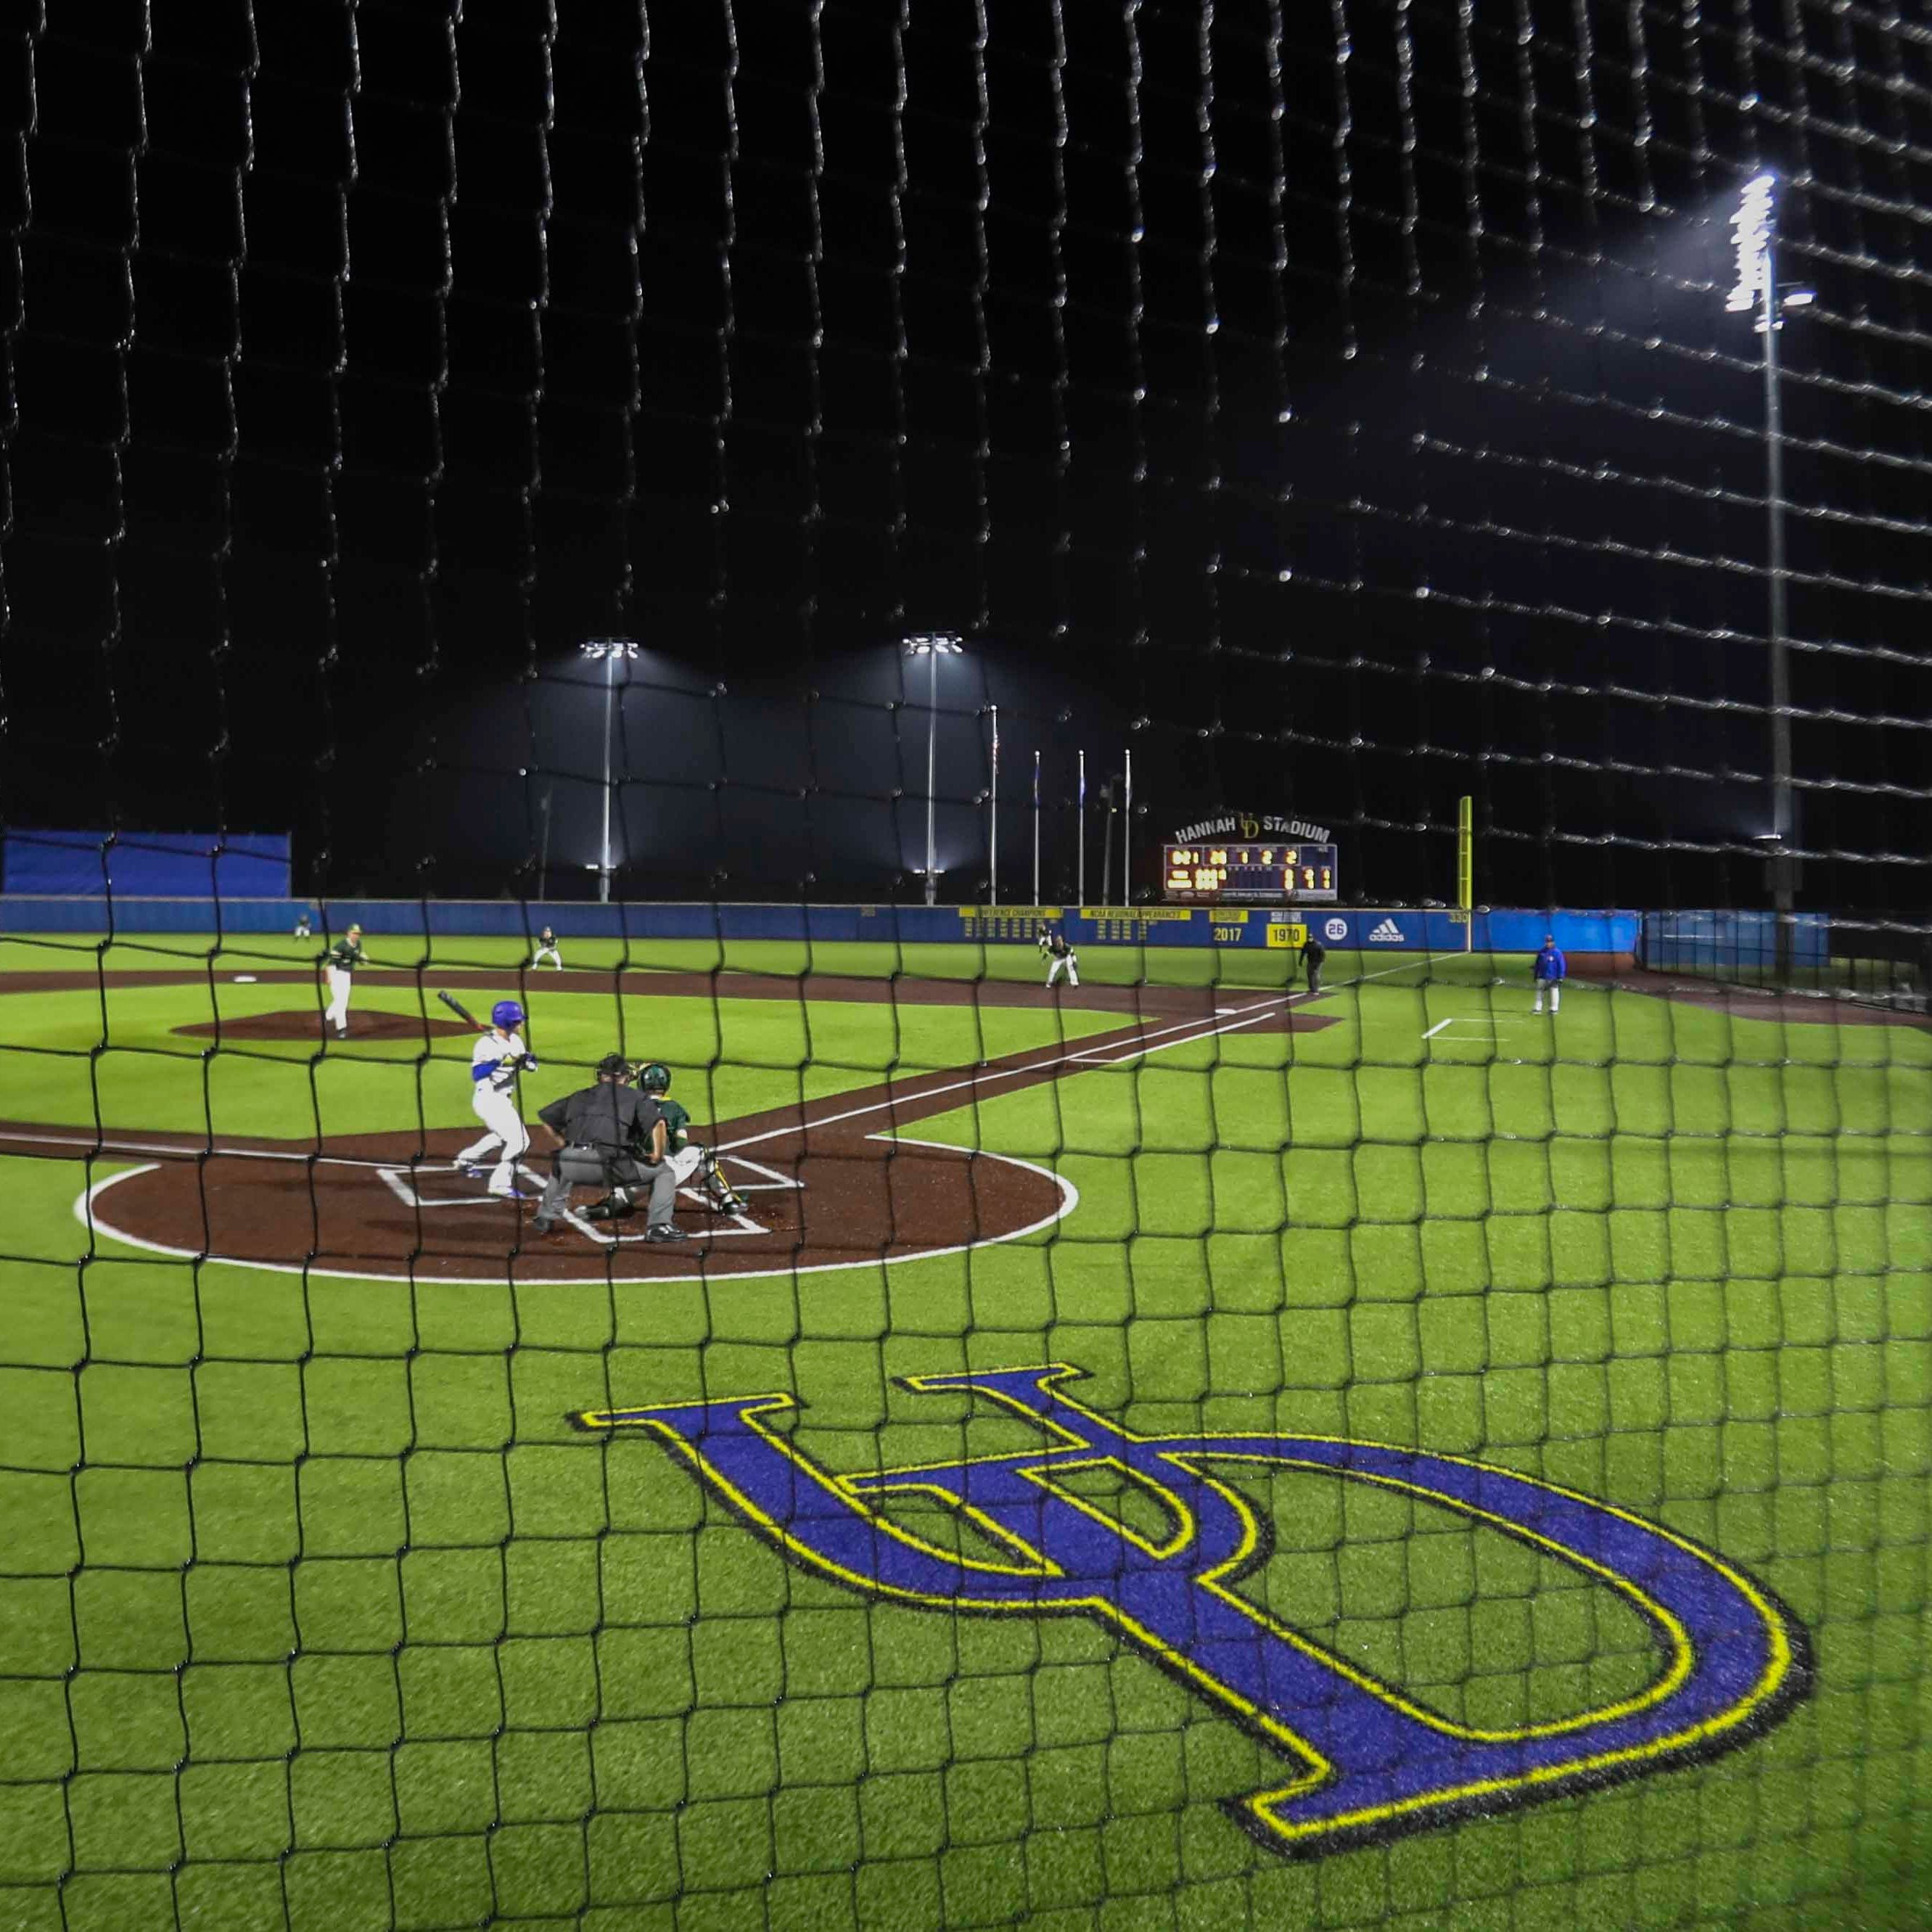 After decades of dreaming, University of Delaware gets night baseball